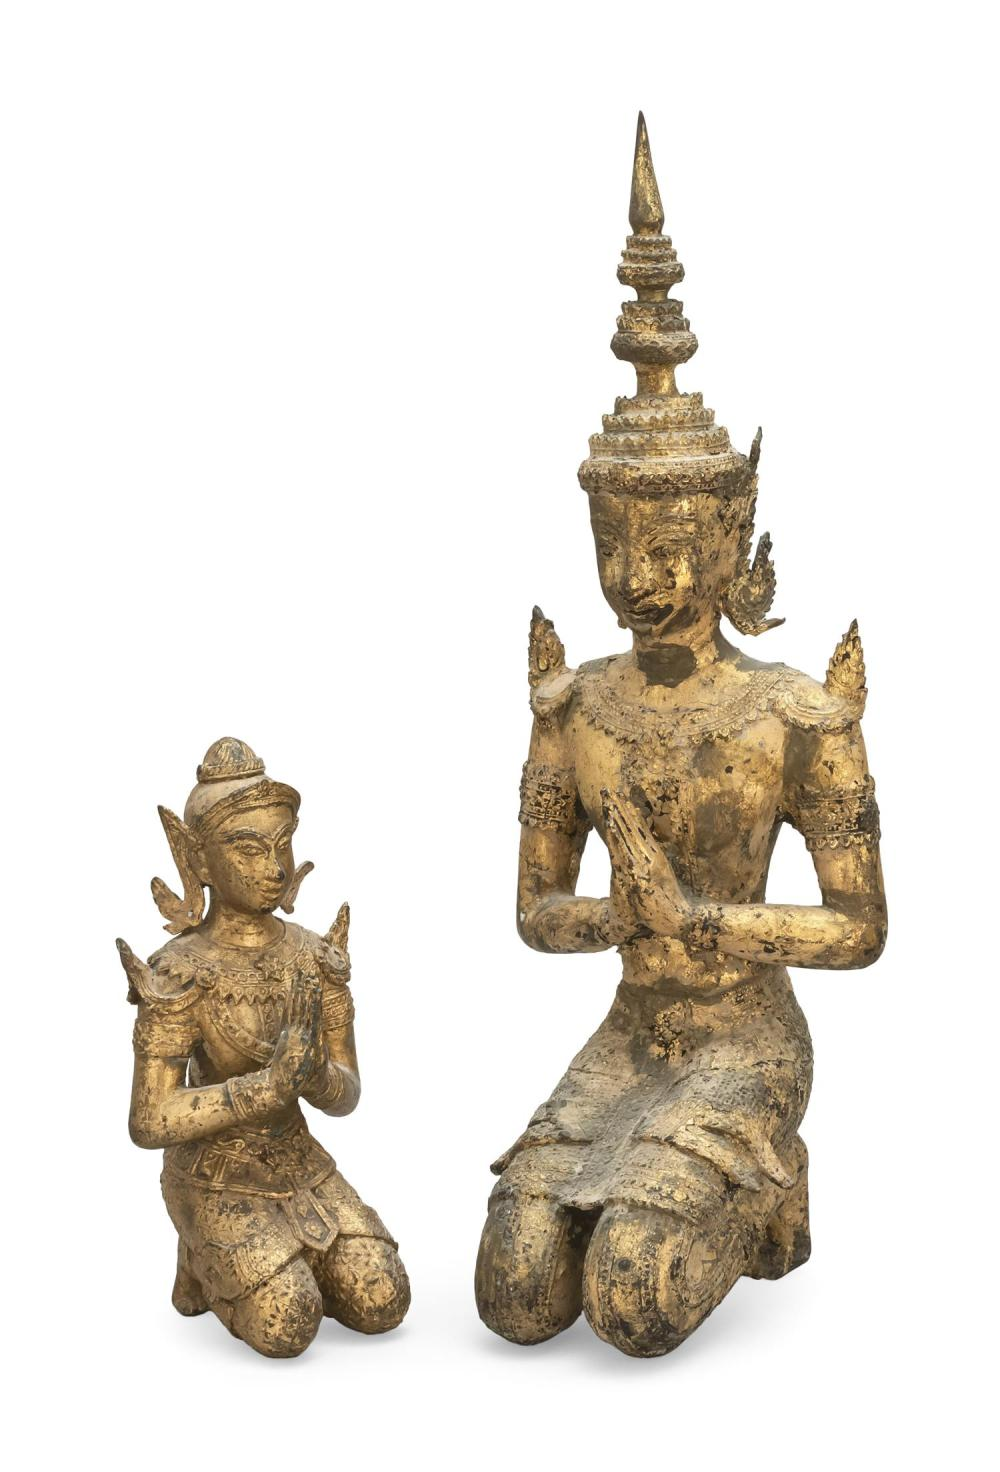 "TWO THAI GILT-BRONZE FIGURES OF KNEELING BUDDHAS Heights 10"" and 19.5""."